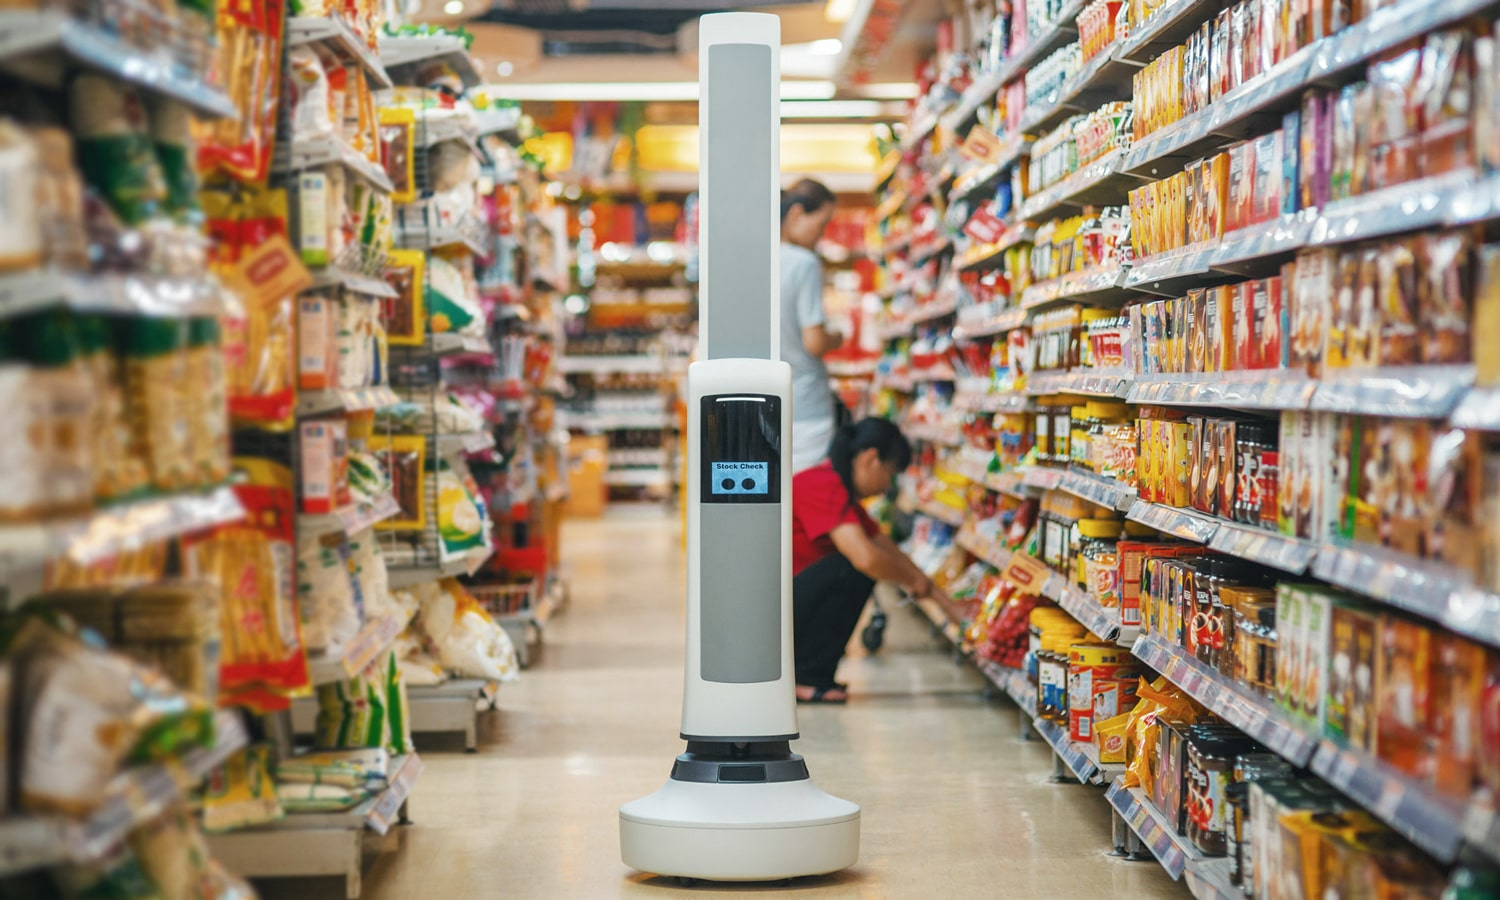 Here's A Robot That Will Make Sure Your Doritos Are Available For Purchase